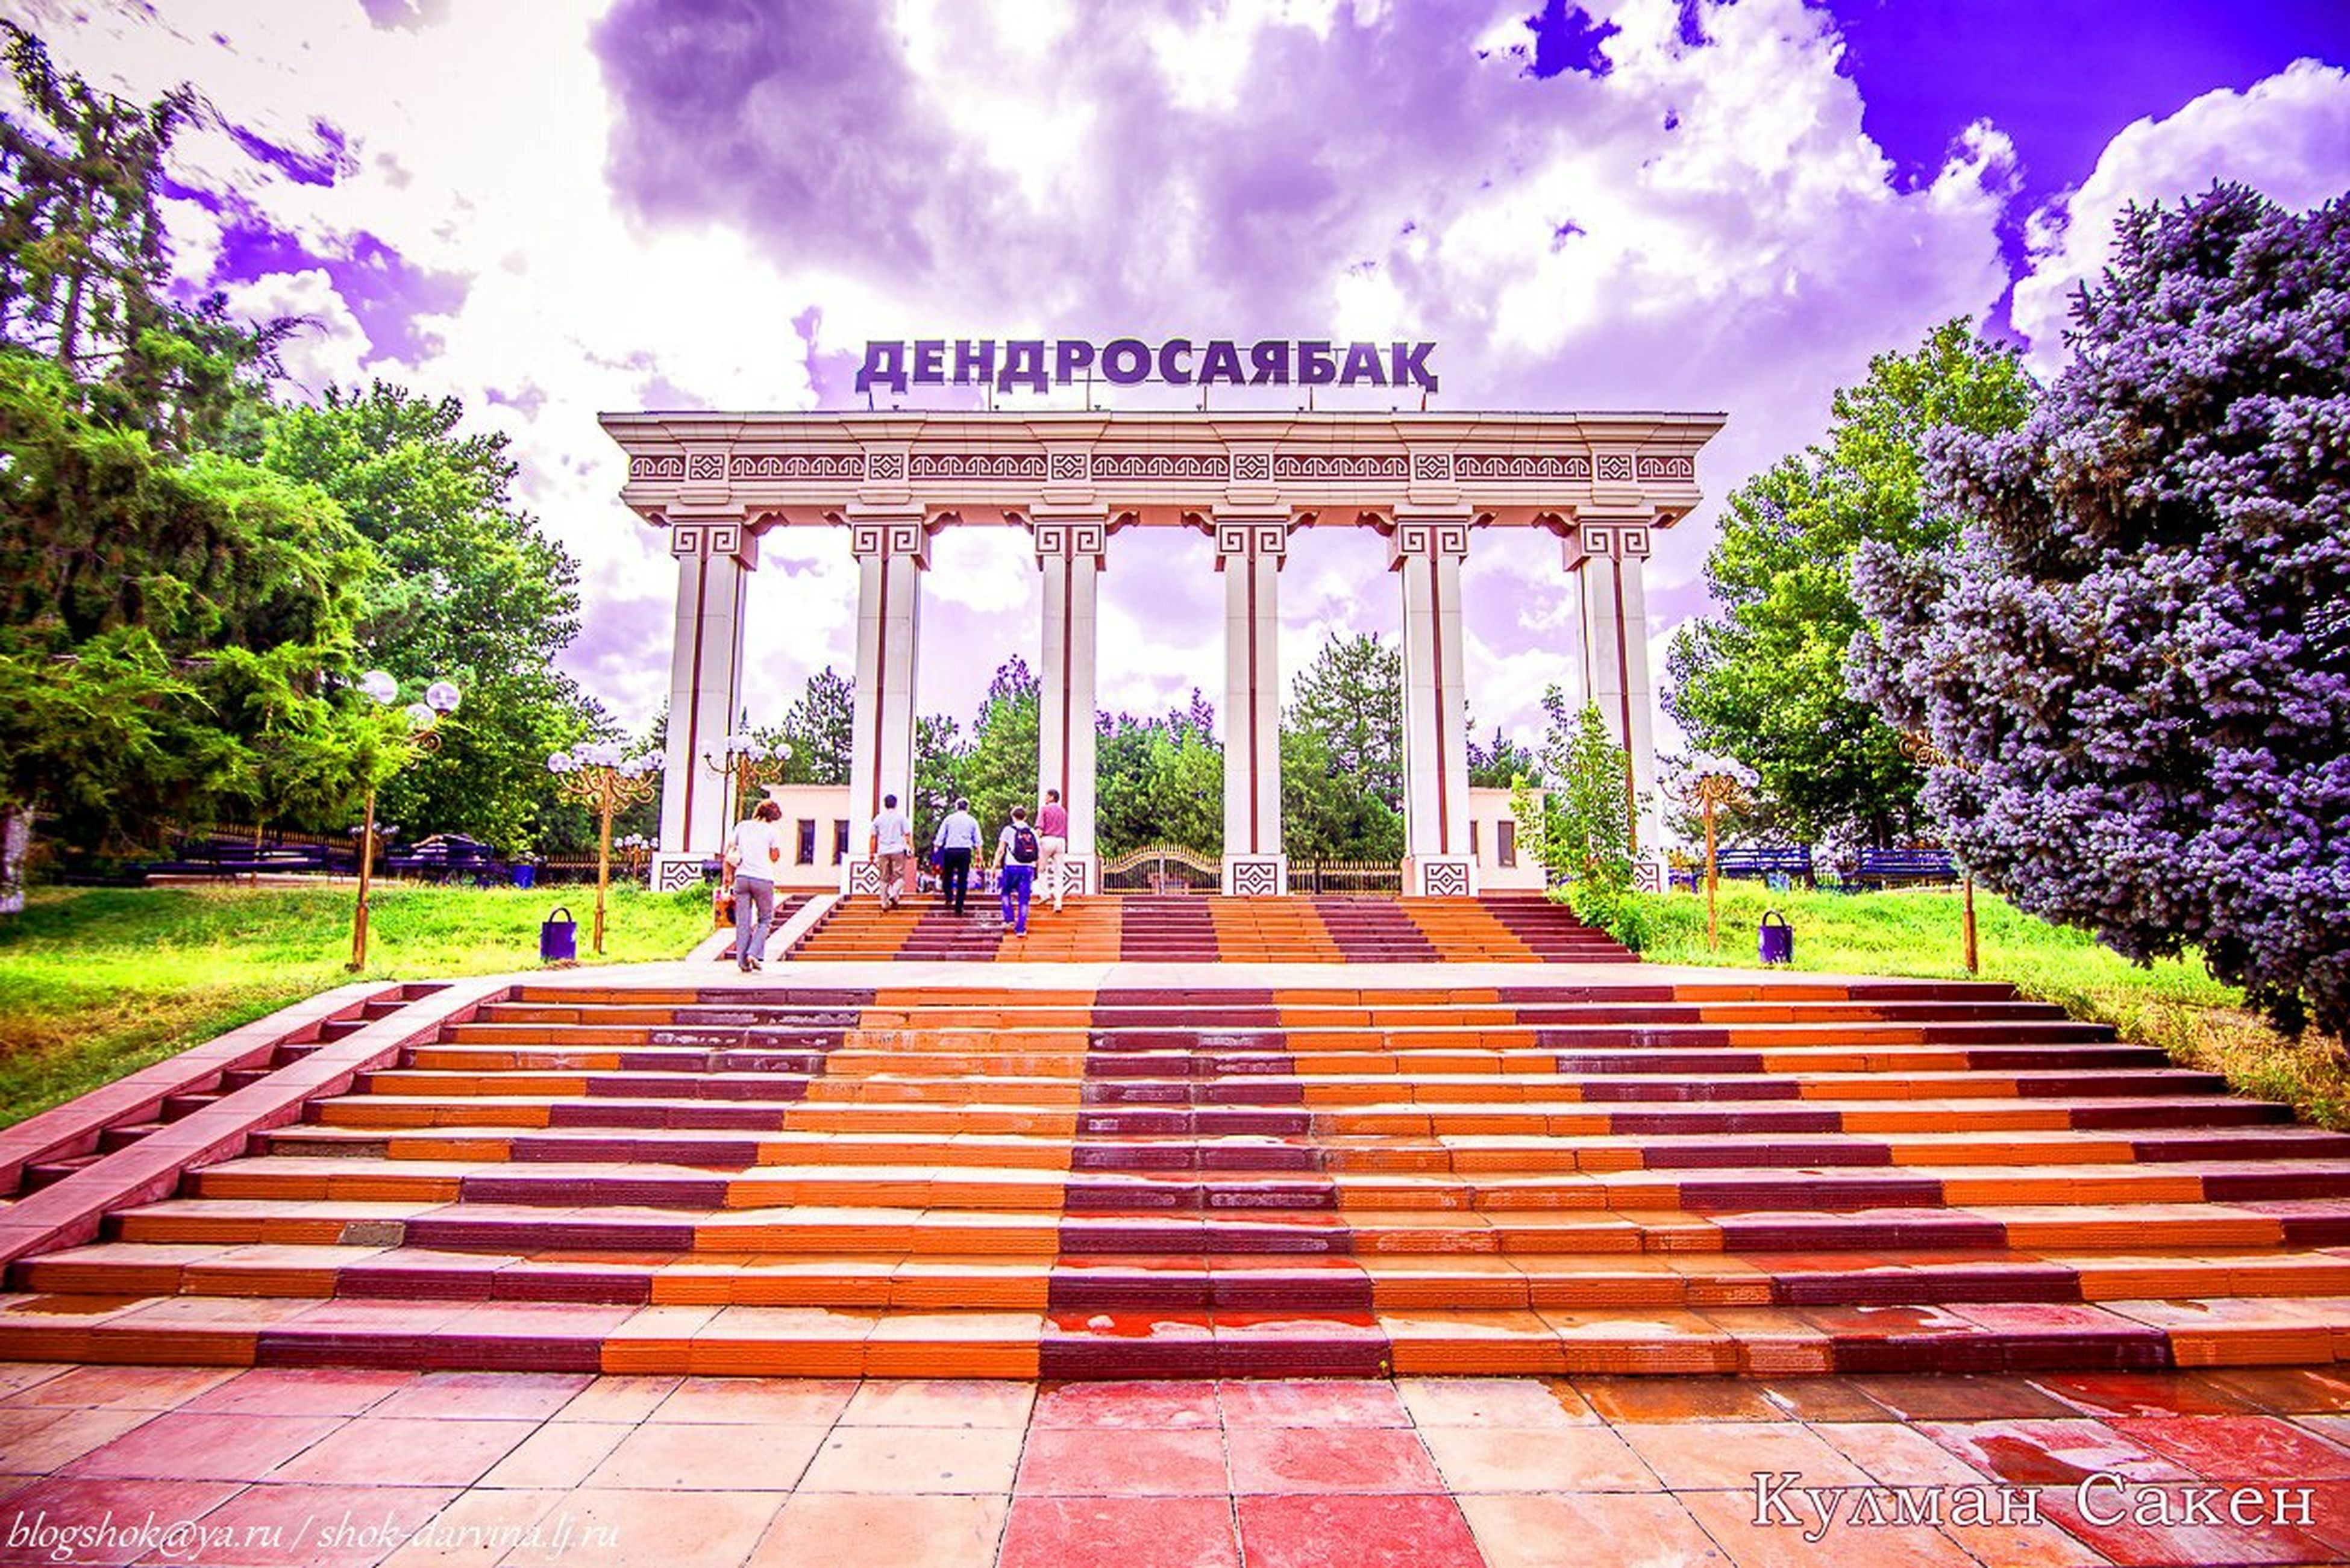 sky, built structure, tree, architecture, building exterior, cloud - sky, travel destinations, cloud, famous place, tourism, steps, outdoors, travel, park - man made space, architectural column, day, sunlight, incidental people, fountain, cloudy